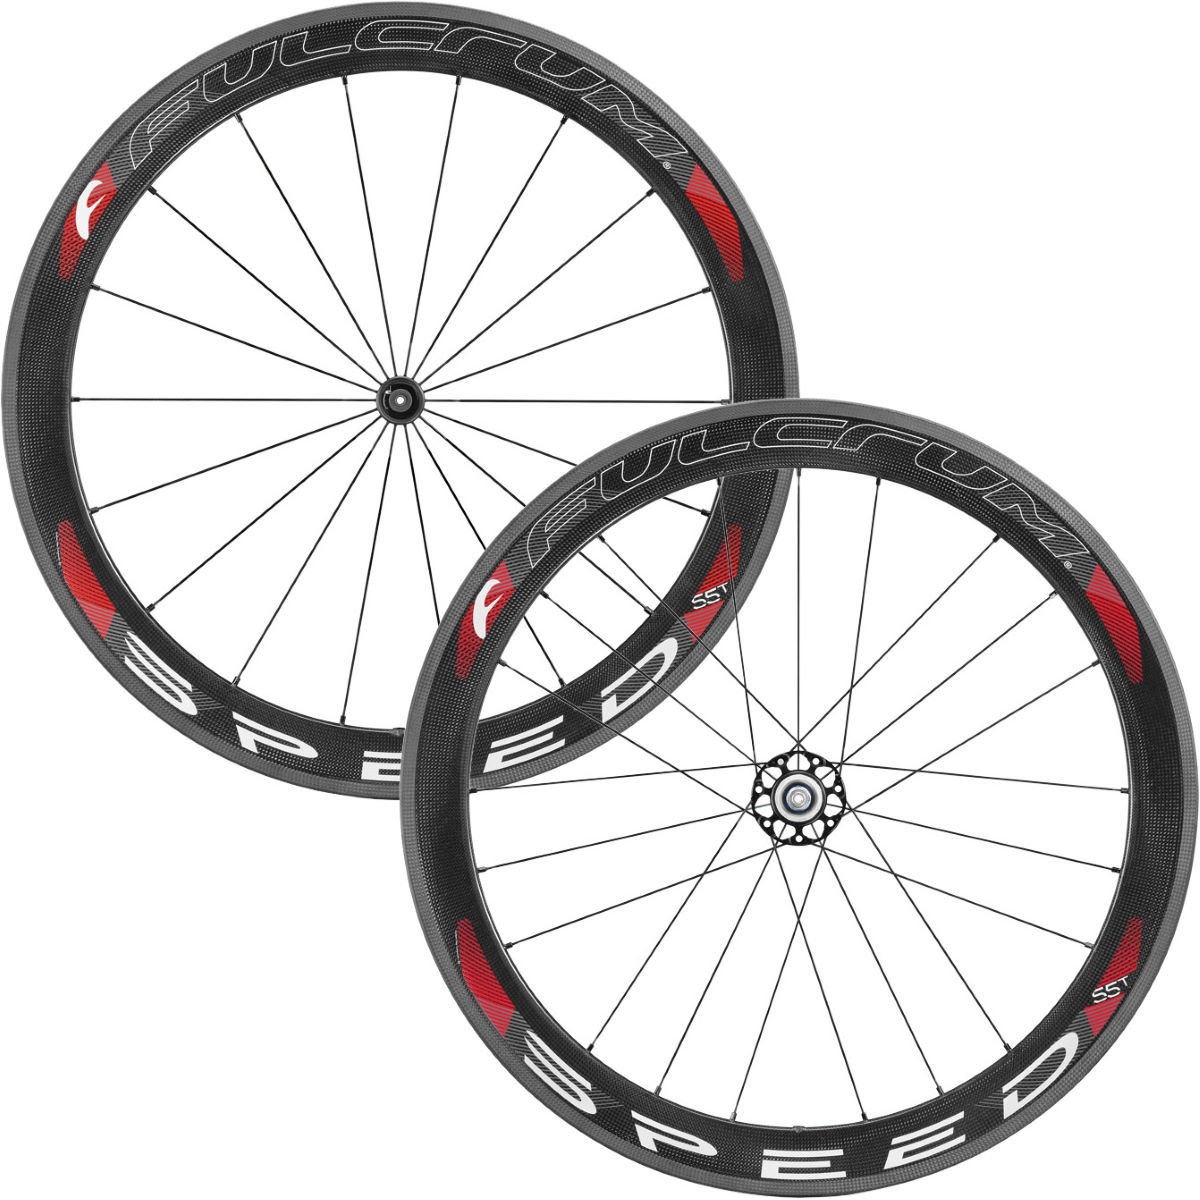 Fulcrum SPEED 55T Carbon Tubular Road Wheelset - Ruedas de competición